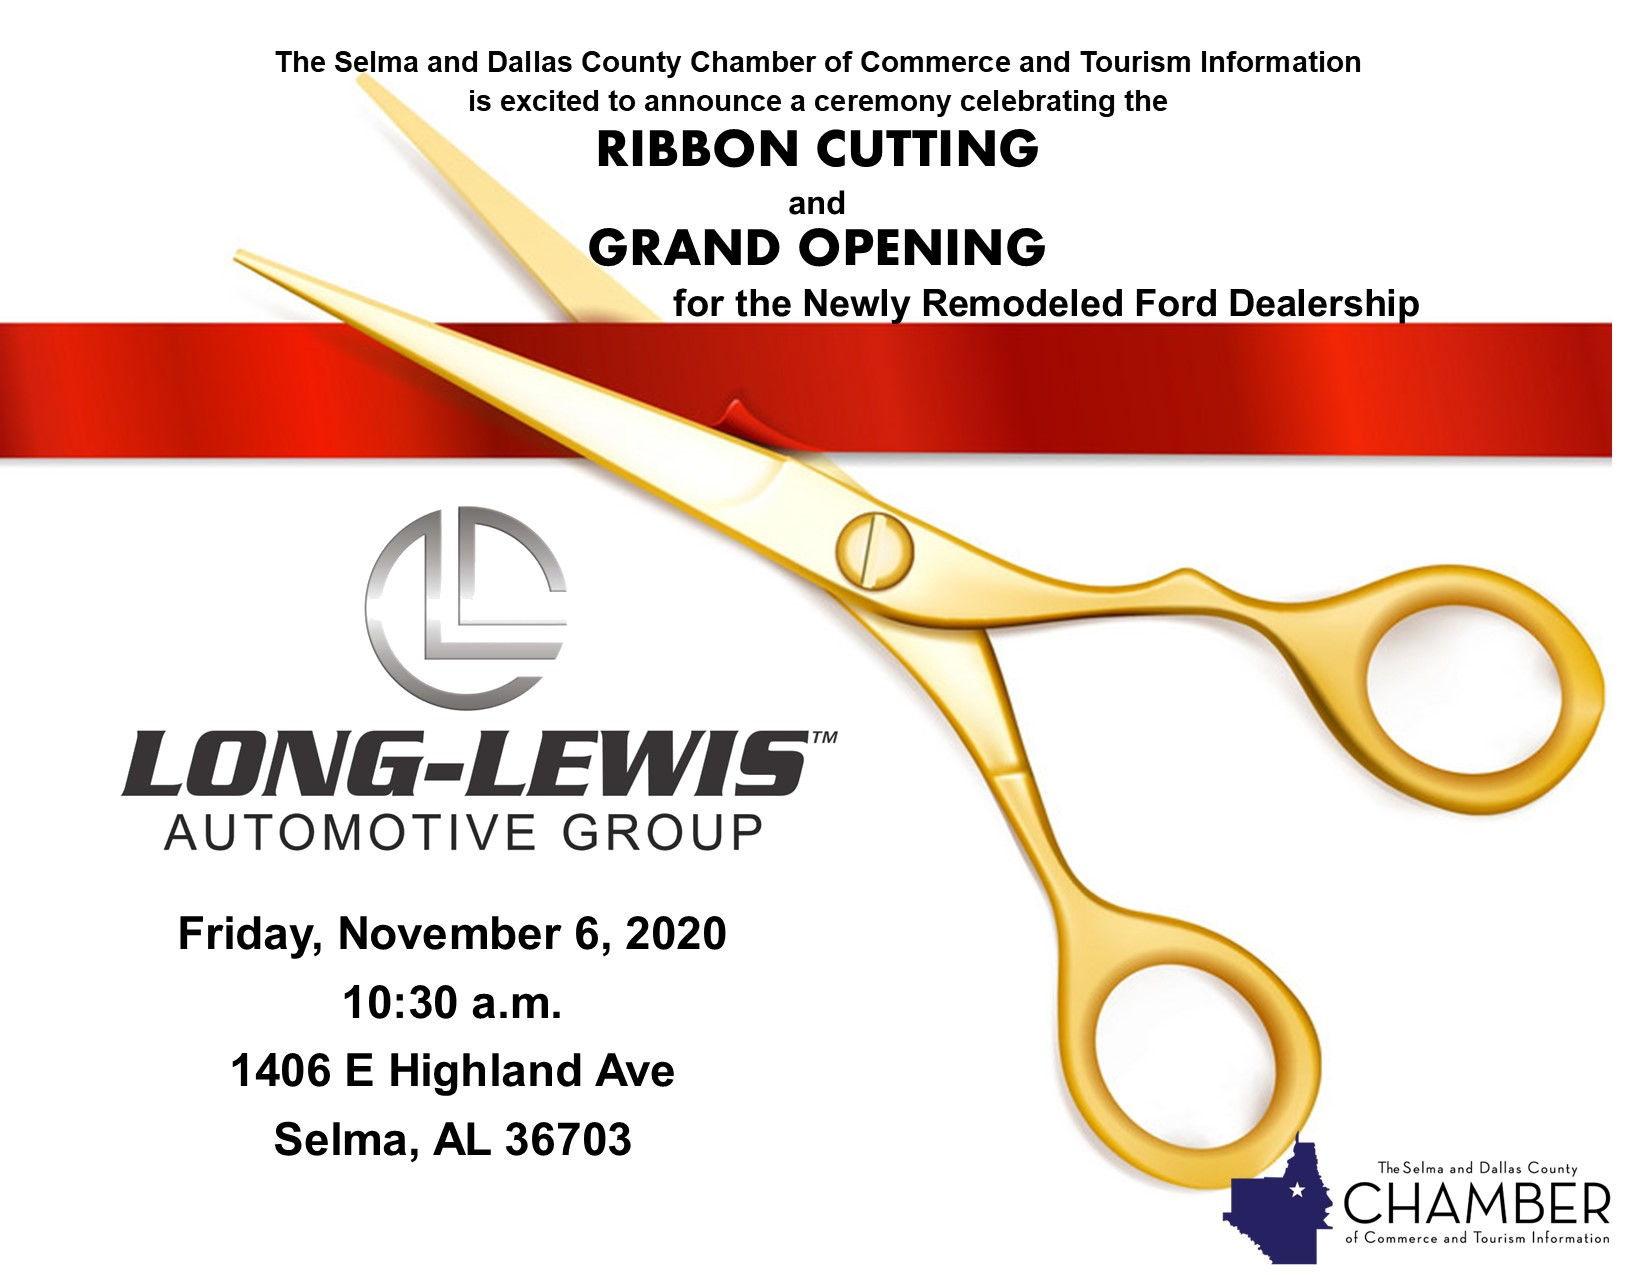 Long Lewis Selma Grand Opening Ribbon Cutting Celebration